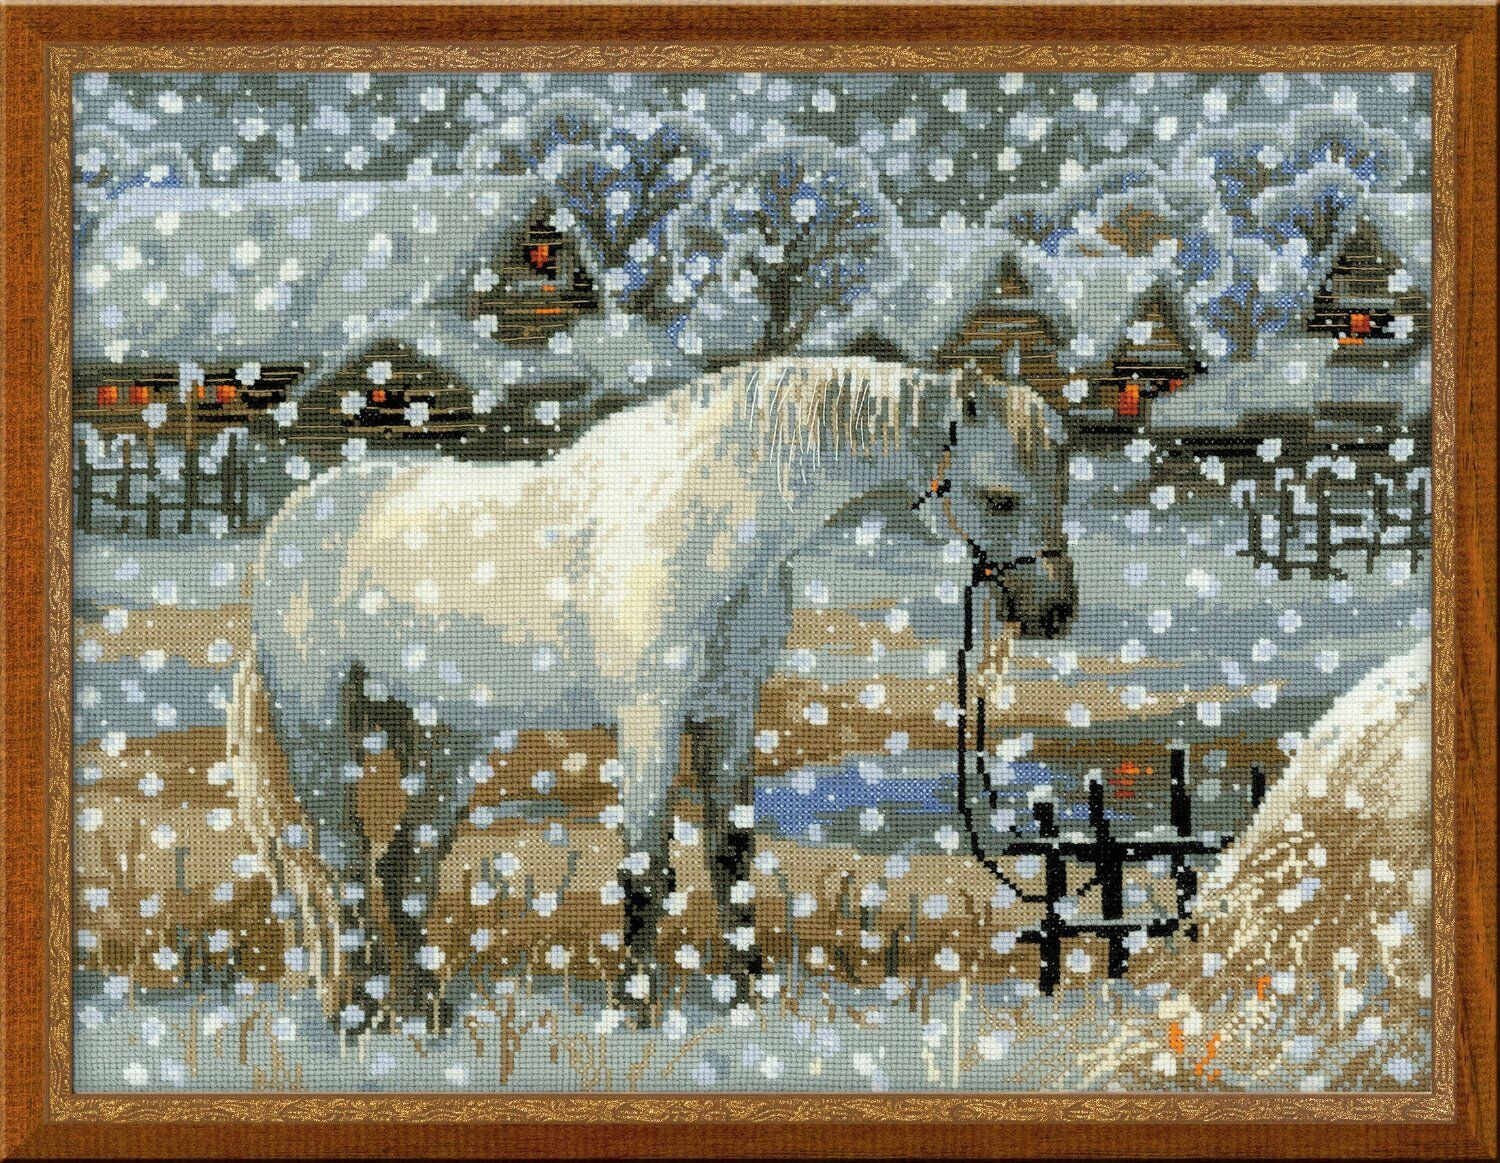 Snowy Winter captif cheval horse Cross Stitch Par Kit Par Stitch Riolis 089e1f